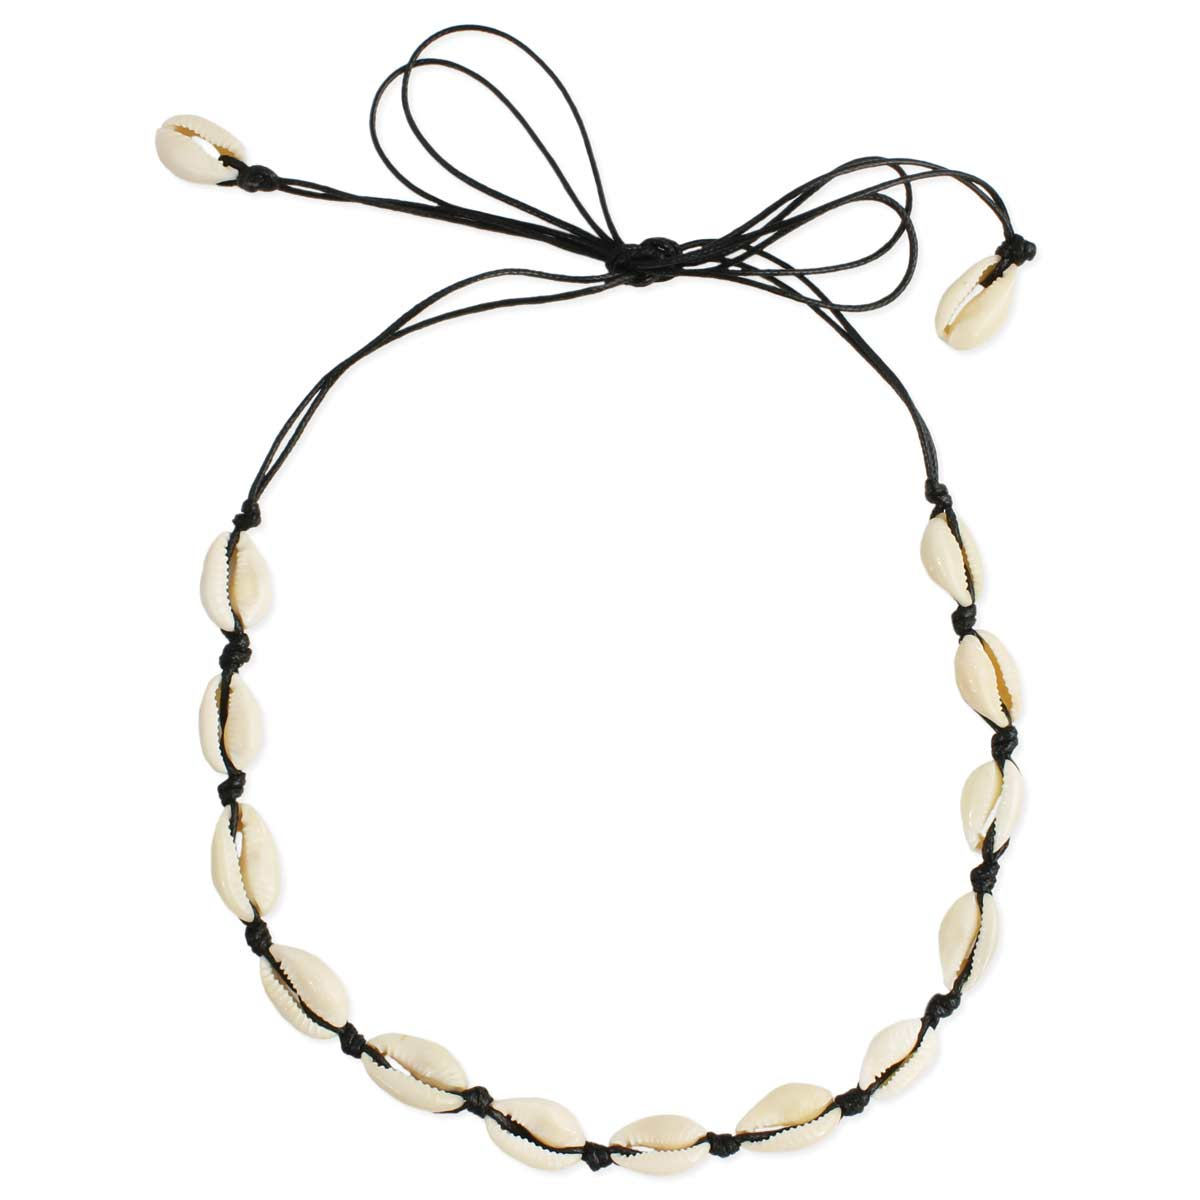 Black Cord cowry shell choker necklace